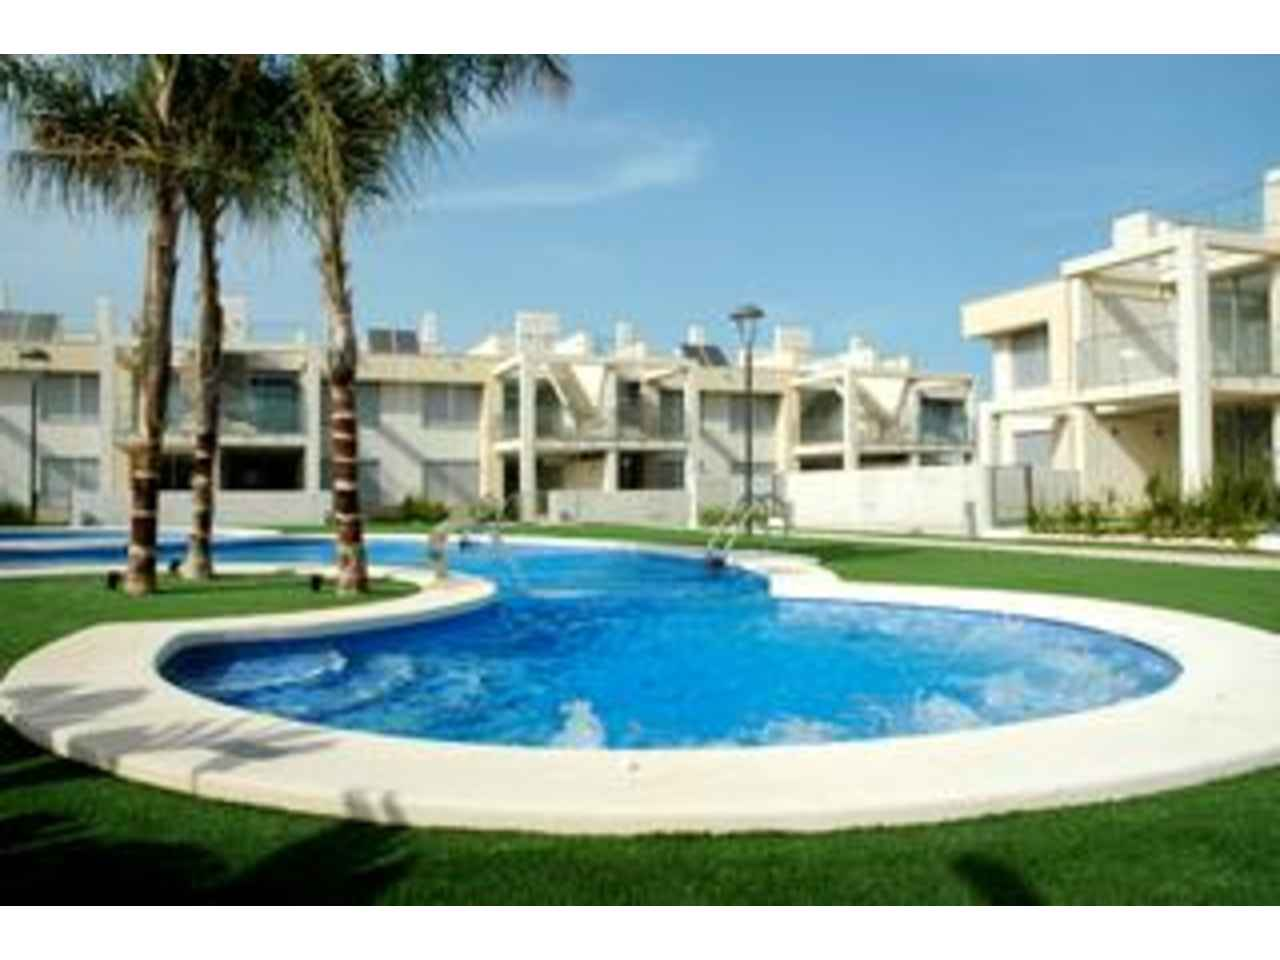 Ref:LA PERLA Apartment For Sale in Los Urrutias